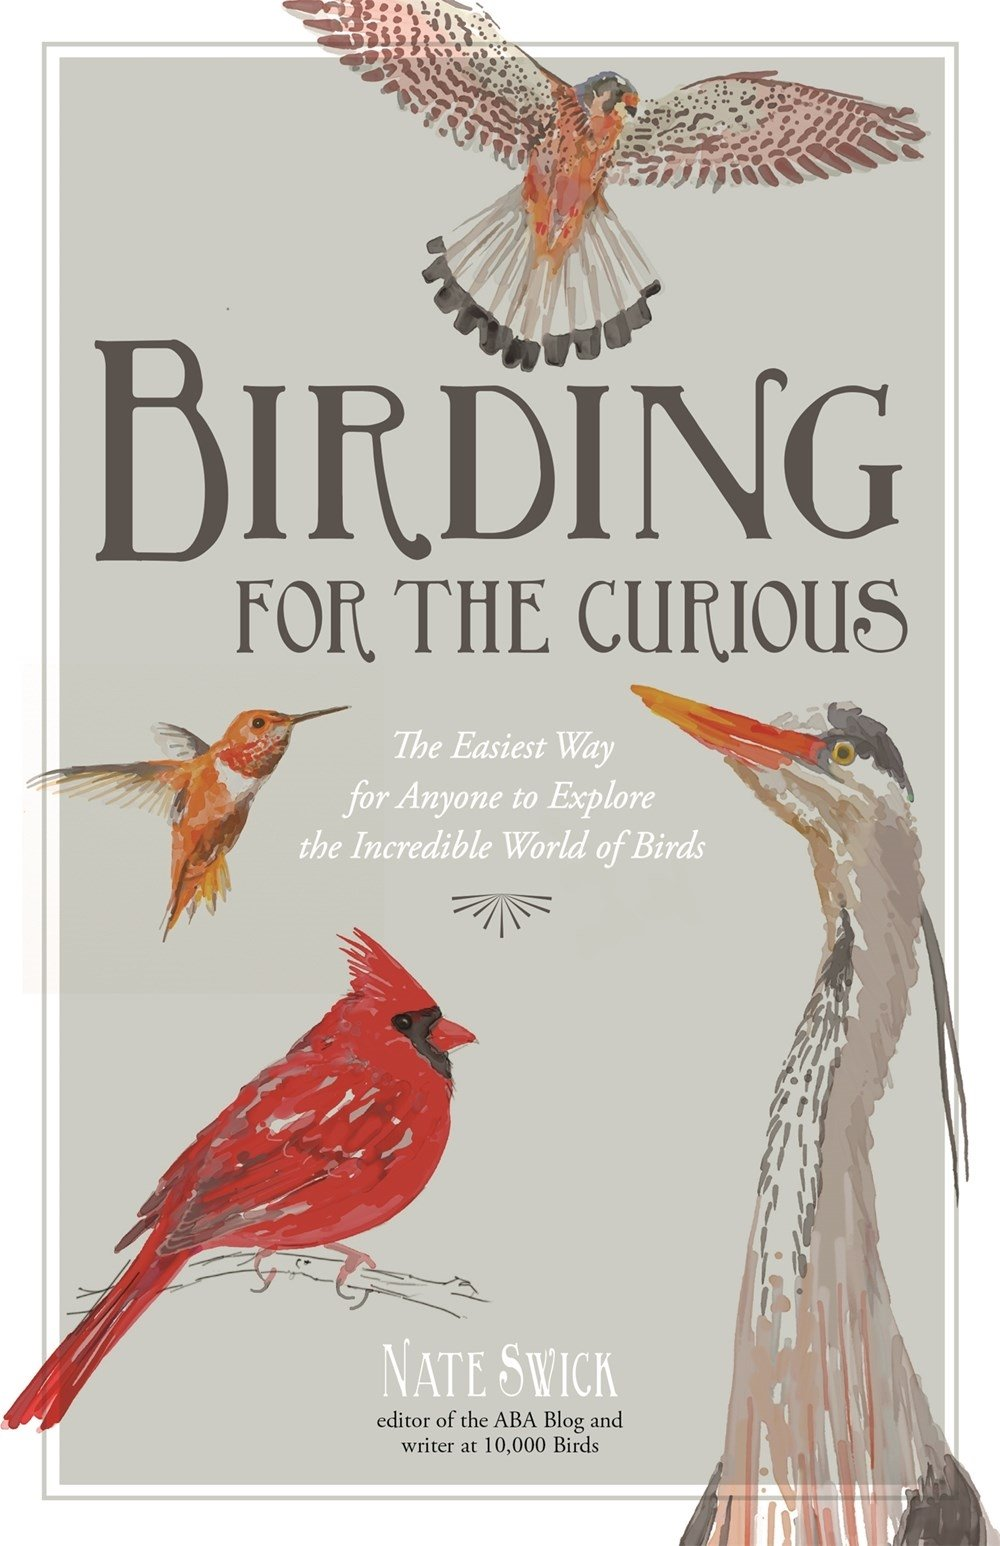 Birding for the Curious: The Easiest Way for Anyone to Explore the Incredible World of Birds